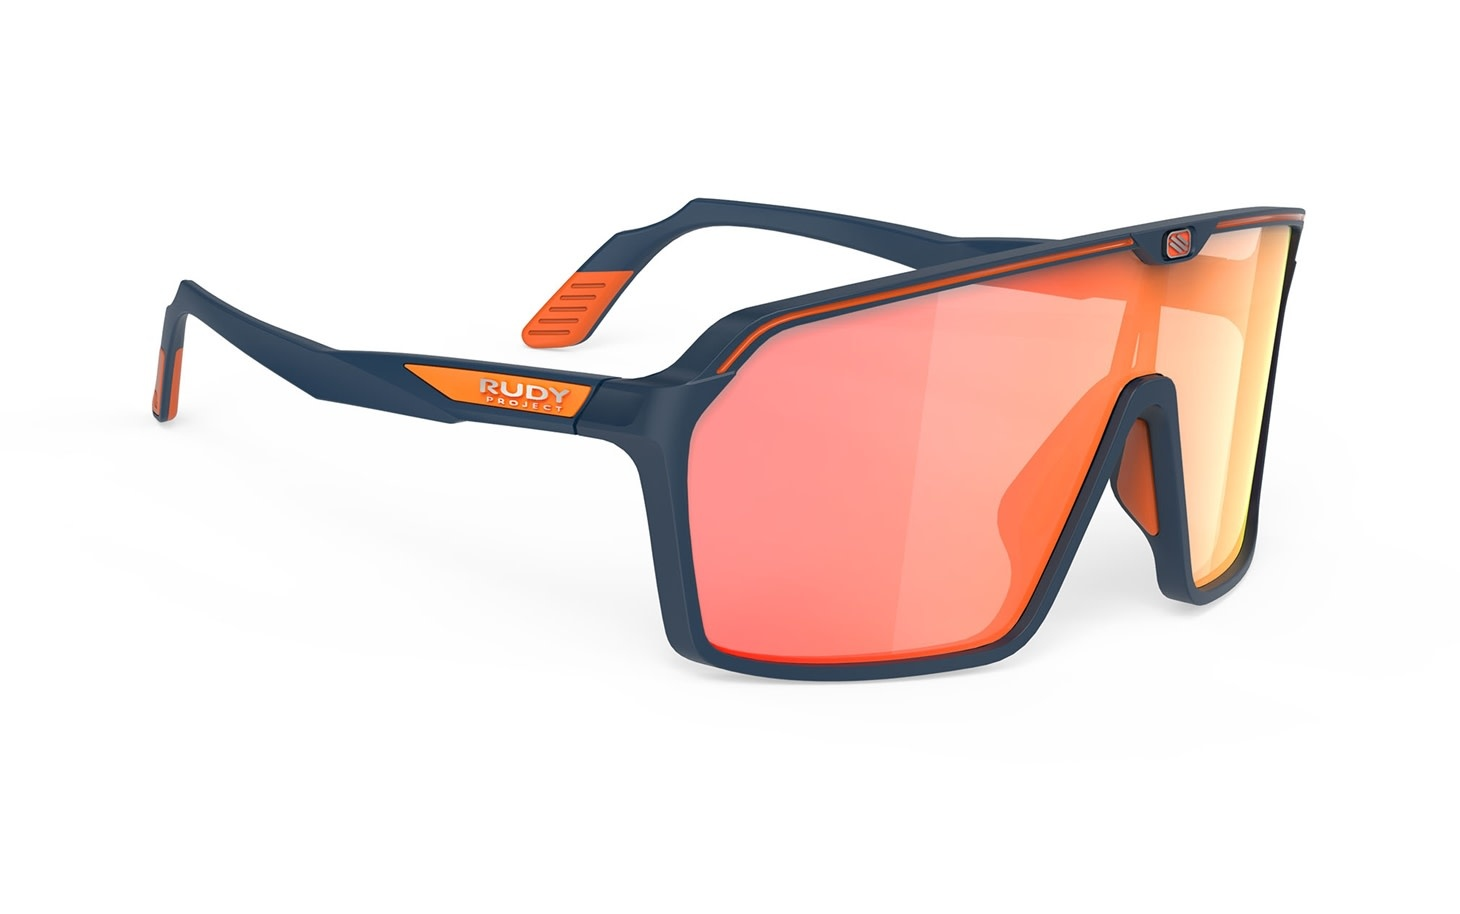 Rudy Project Rudy Project SPINSHIELD Partager Blue Navy Matte - RP Optics Multilaser Orange